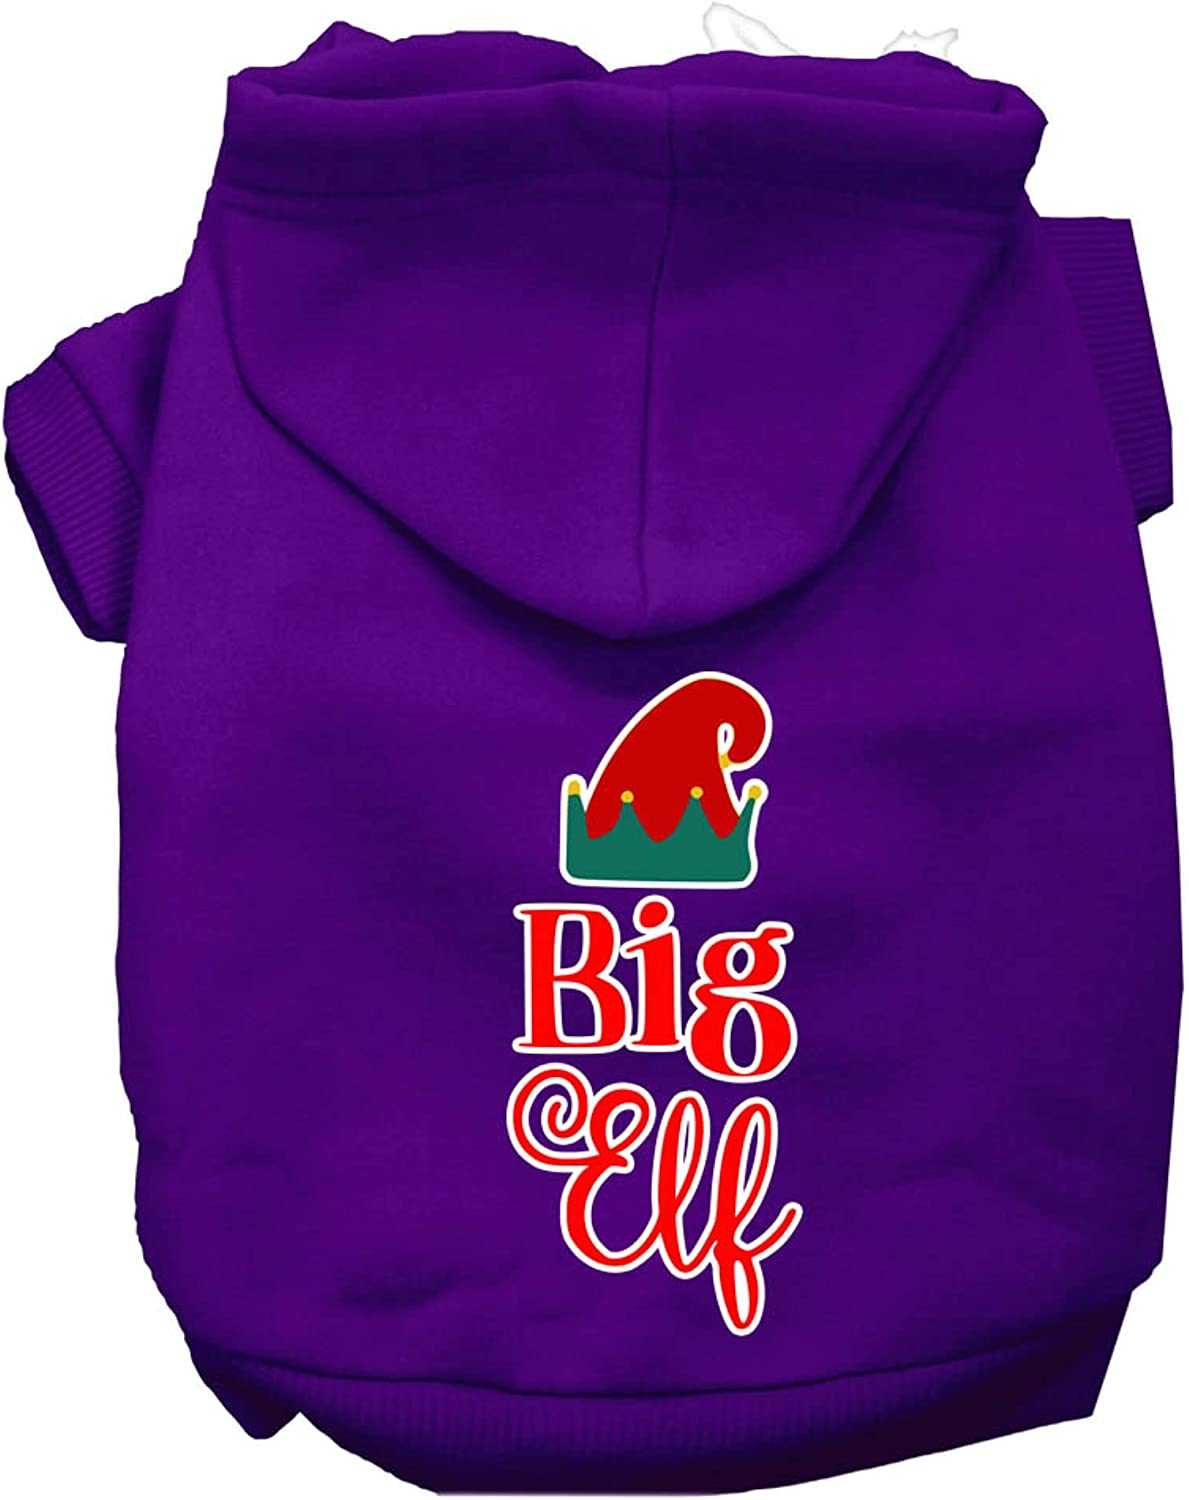 Mirage Pet Product Big Elf Screen Print Excellence XS Same day shipping Hoodie Purple Dog